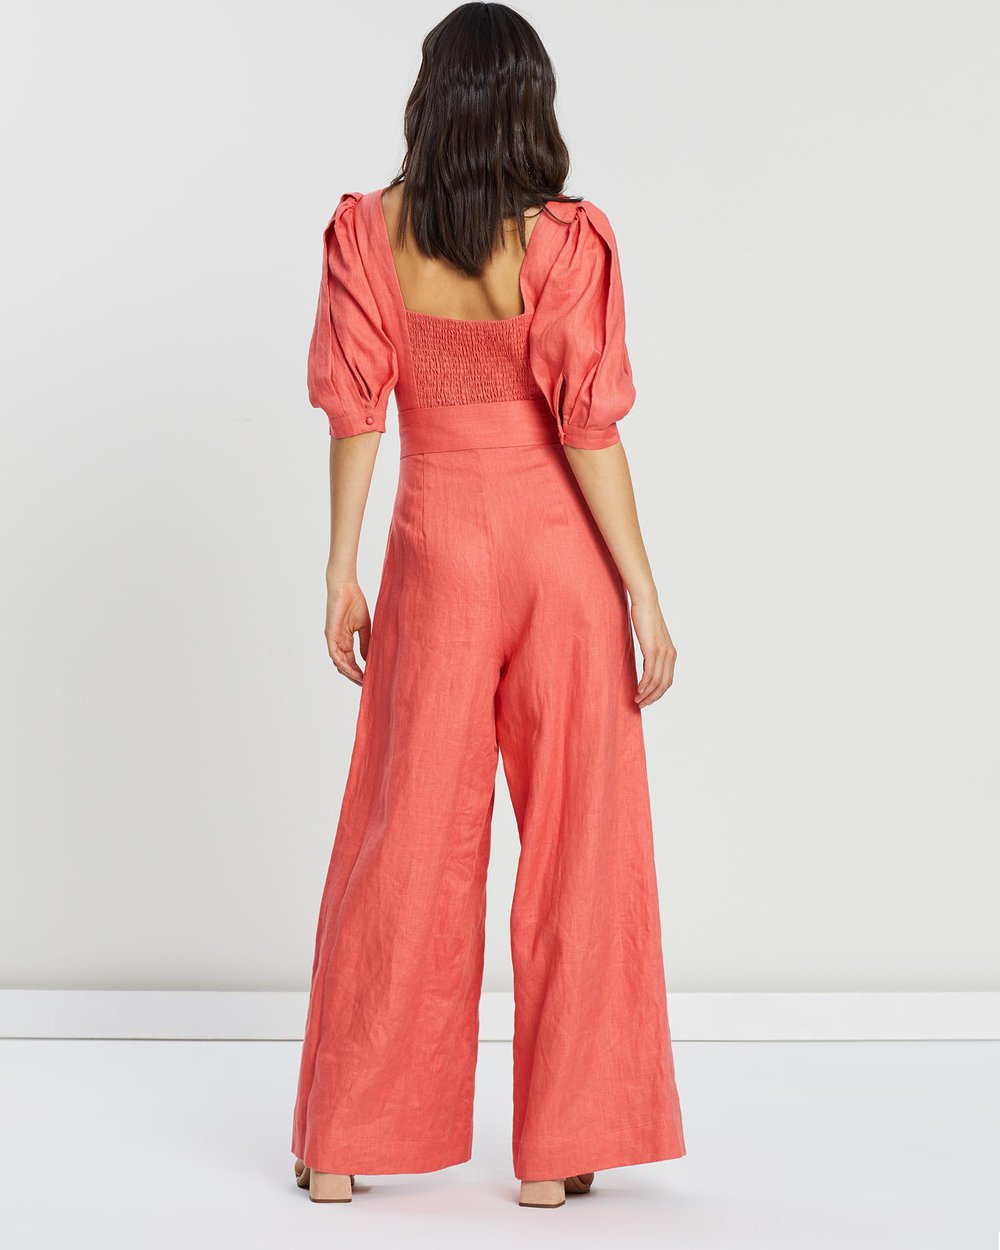 Ministry of Style Celia Jumpsuit - Rouge